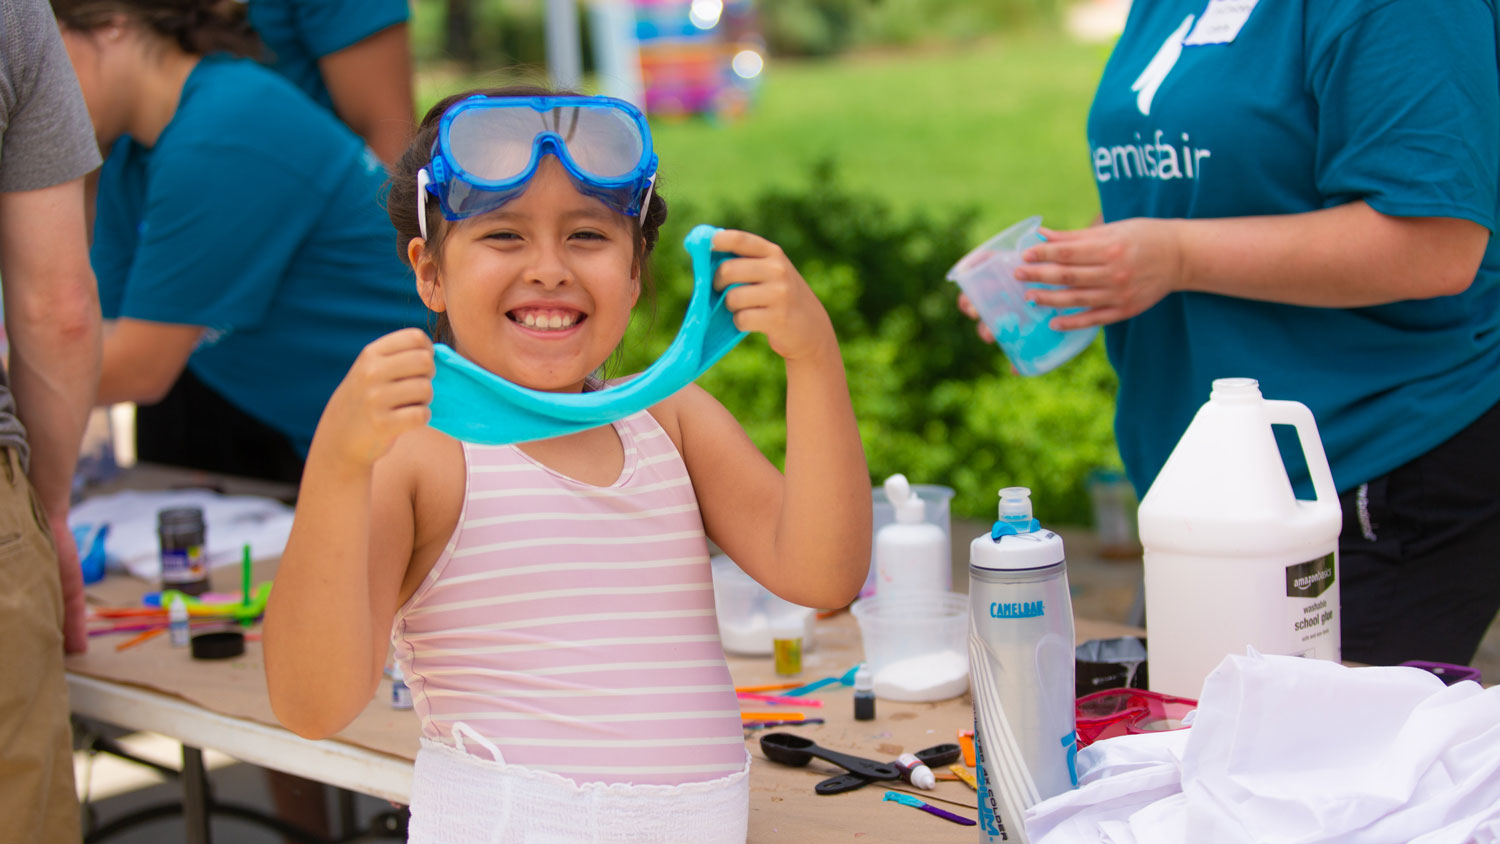 Super Fun Saturday: STEAM Edition at Hemisfair